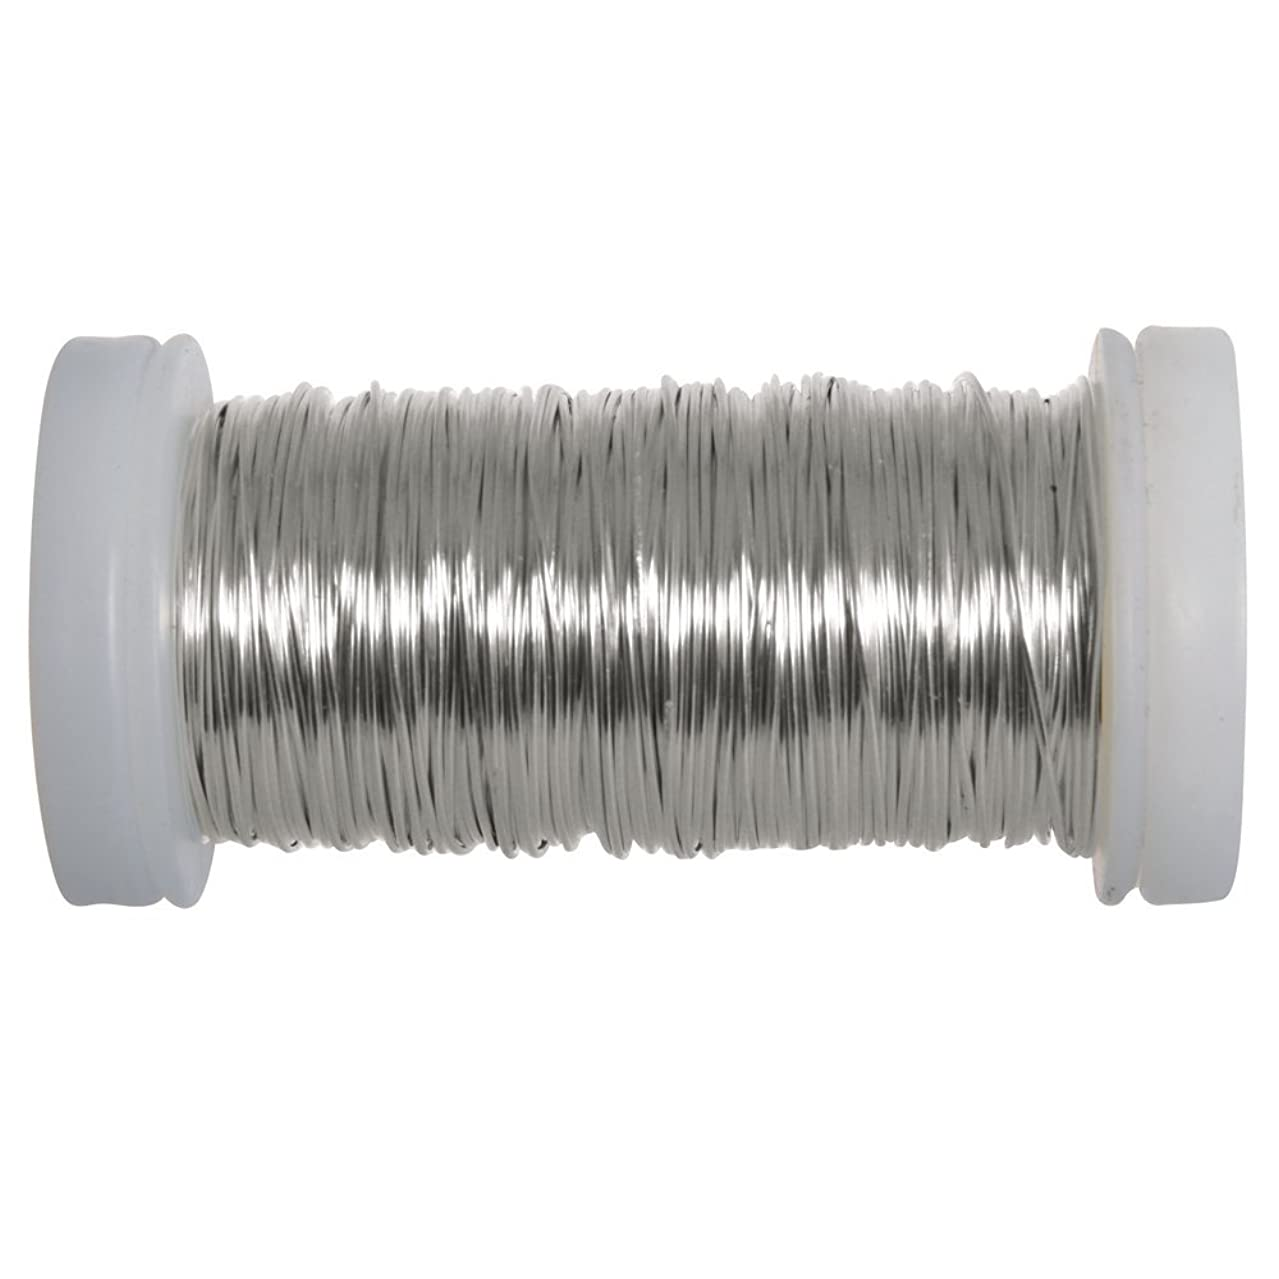 Rayher Silver Wire, 0.5 mm, Spool 50 m